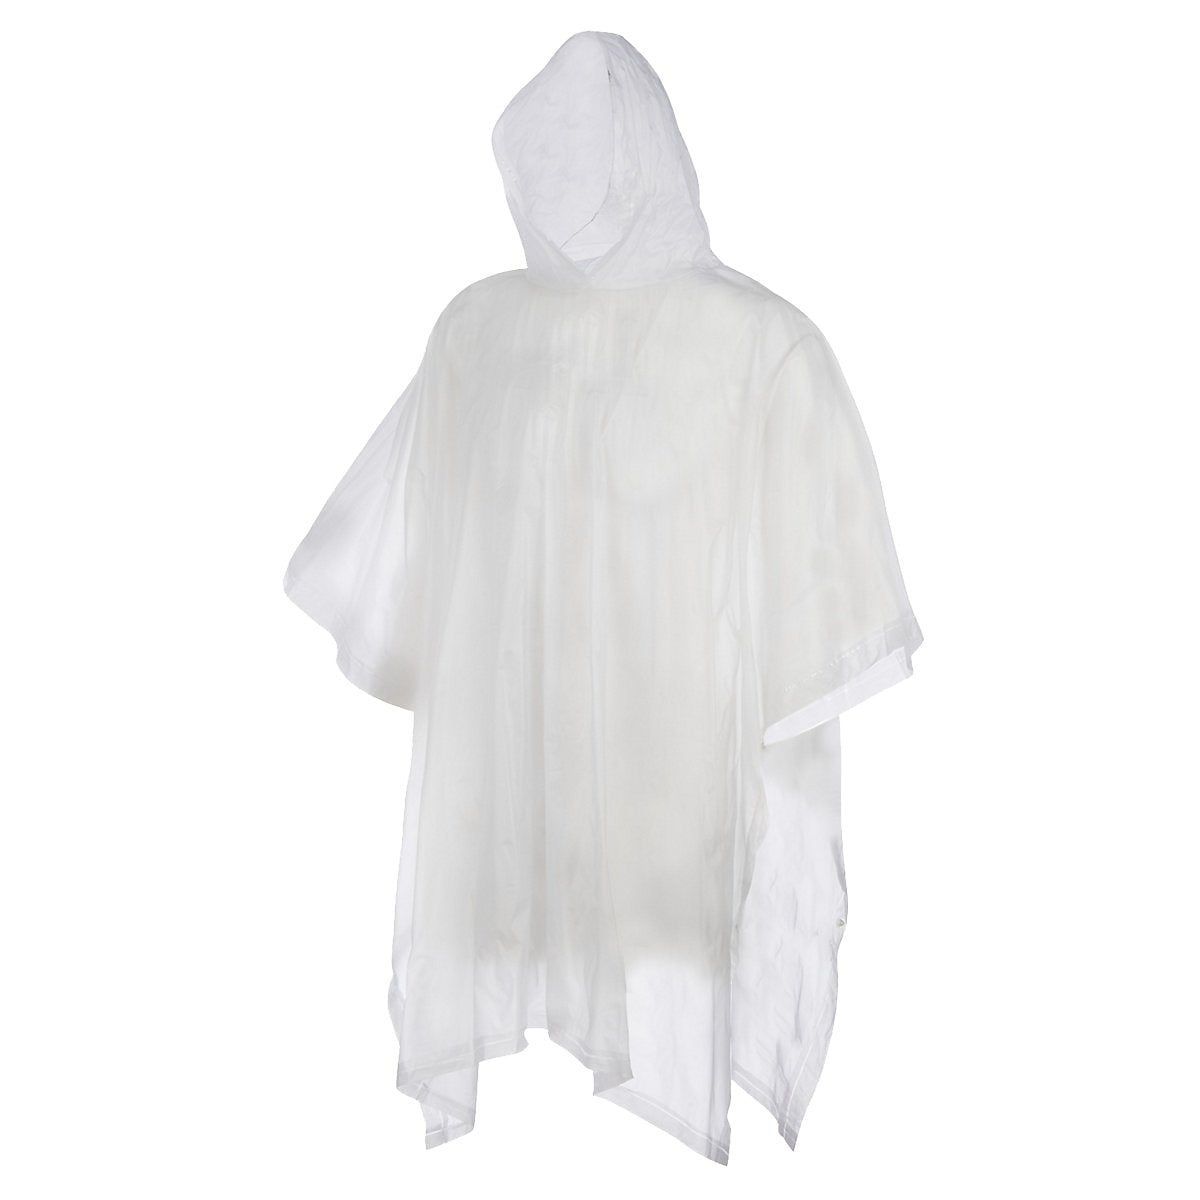 Storm Duds Lightweight Clear Poncho - Mr. Knickerbocker